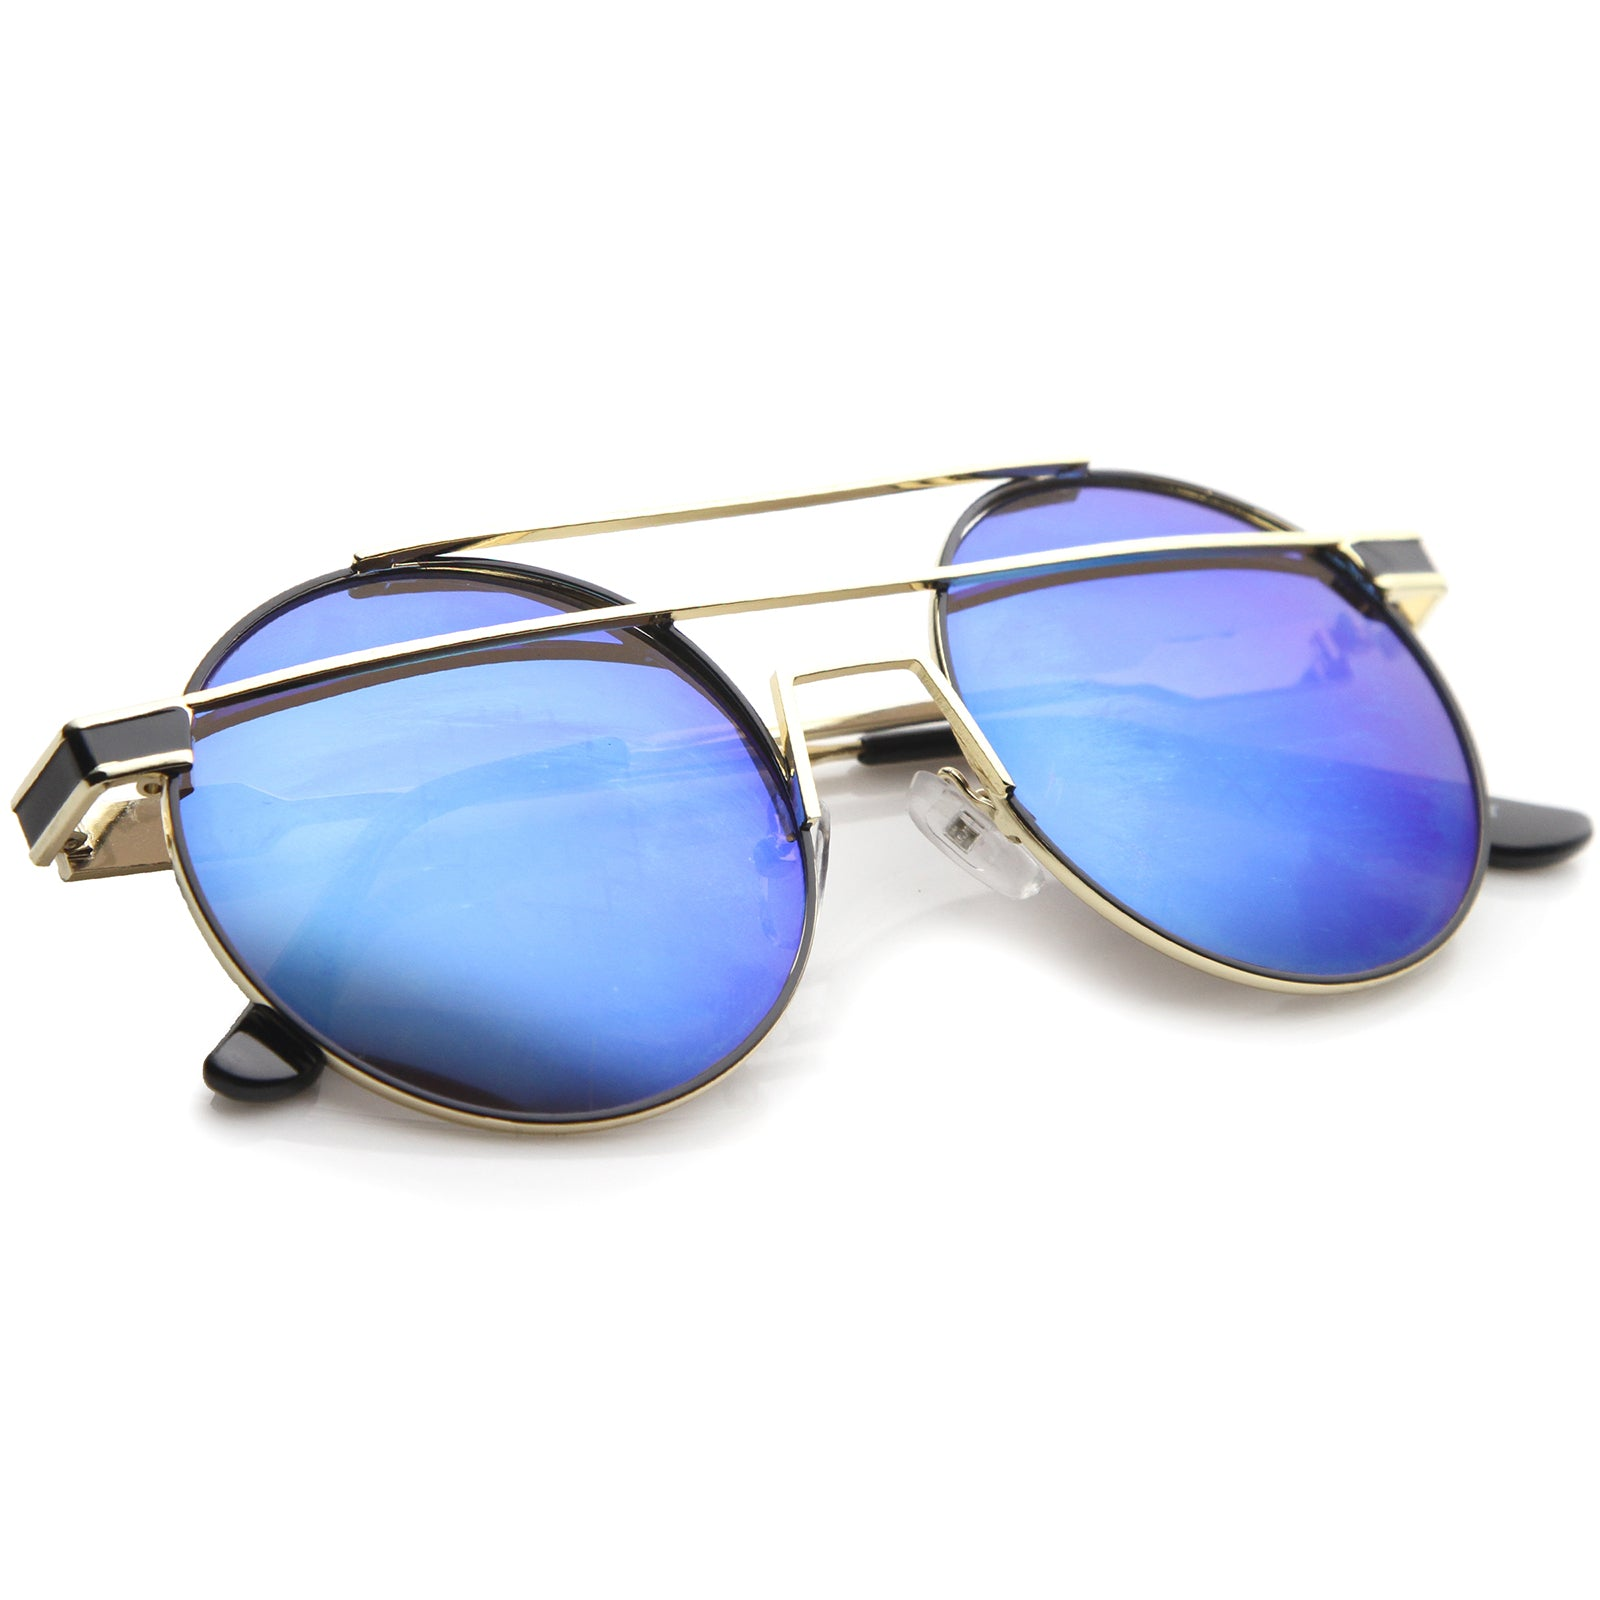 Modern Metal Frame Double Bridge Colored Mirror Lens Round Sunglasses 59mm - sunglass.la - 4